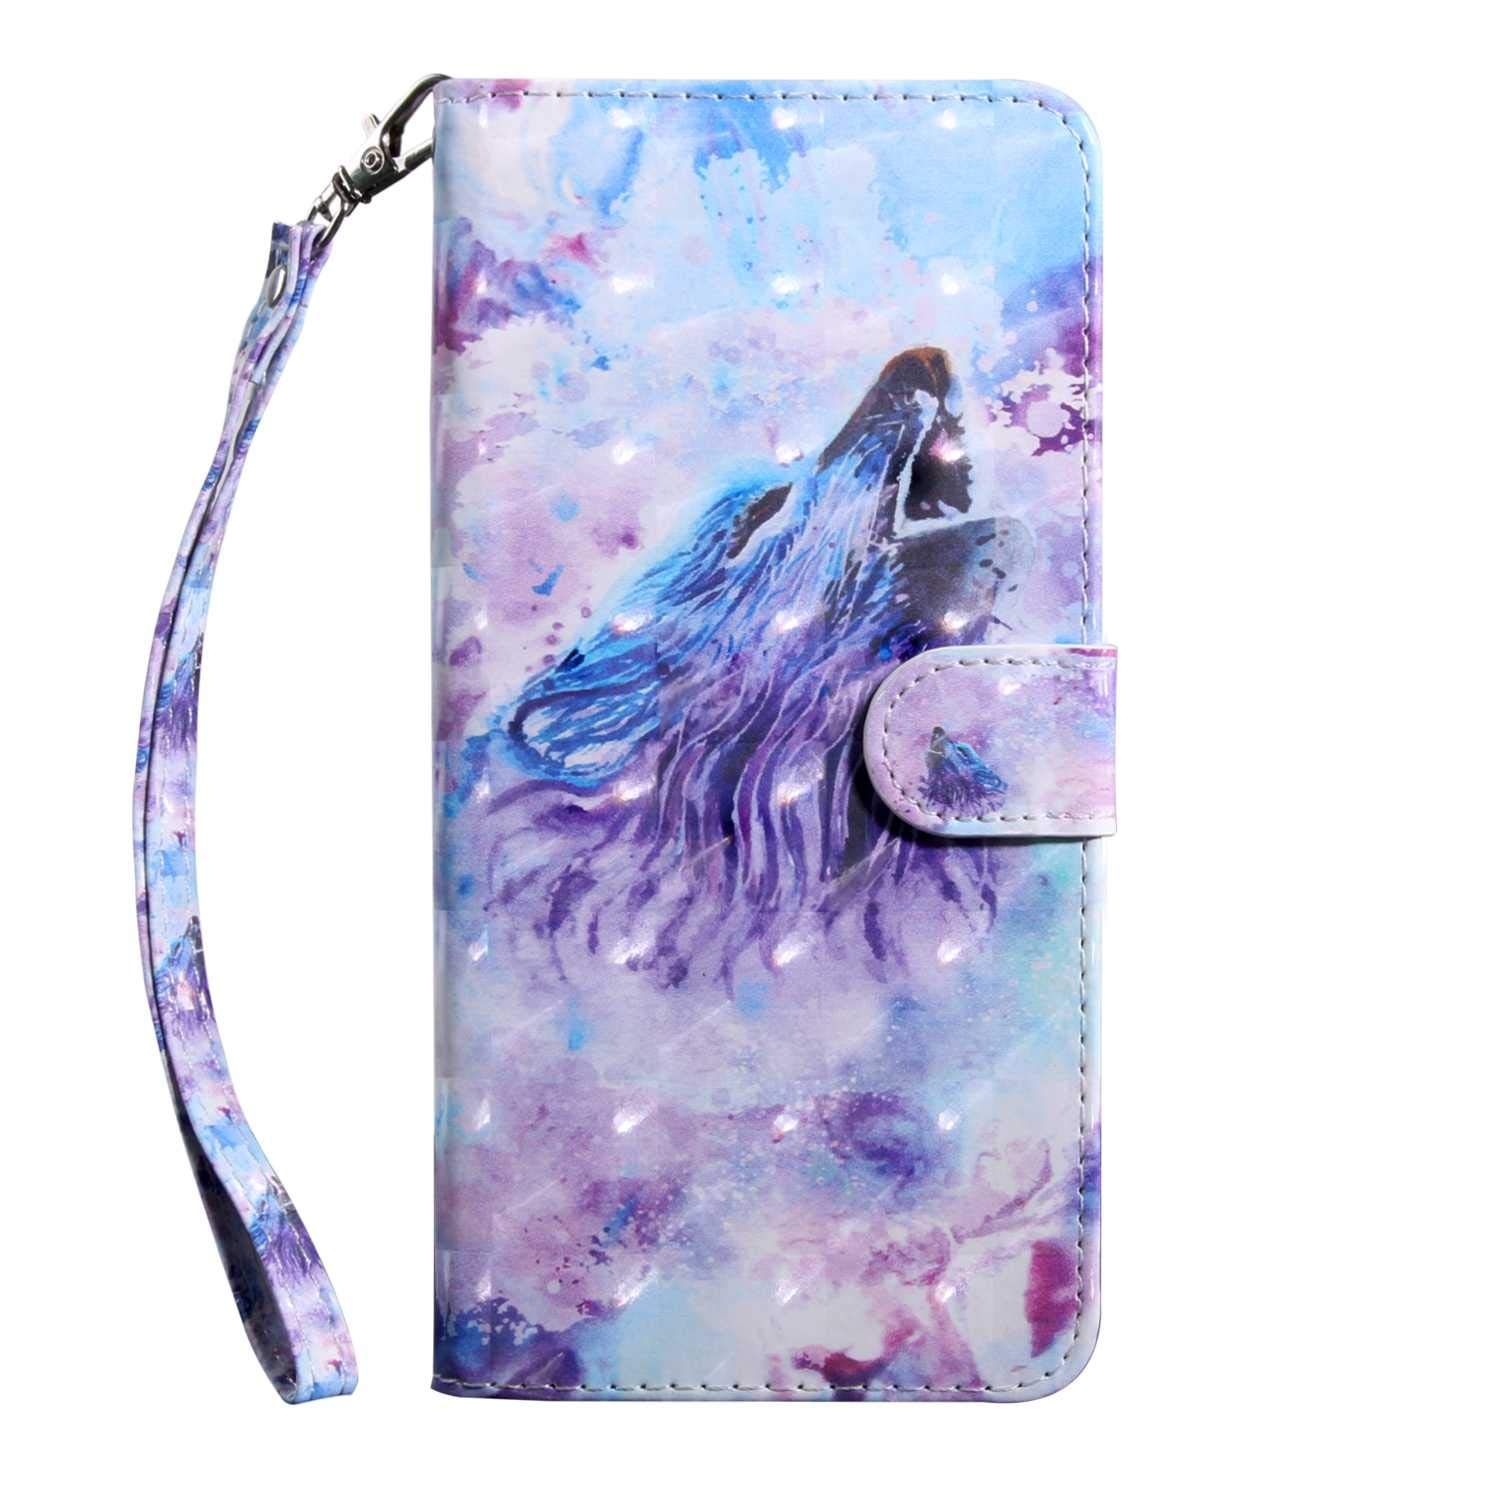 Xiaomi MI 5X Case CUSKING Magnetic Wallet Case for Xiaomi MI 5X [Card Slot] [Hand Strap] [Flip Case] [Easy to Clean] Full Body Proective Case - Blue and Purple, Wolf